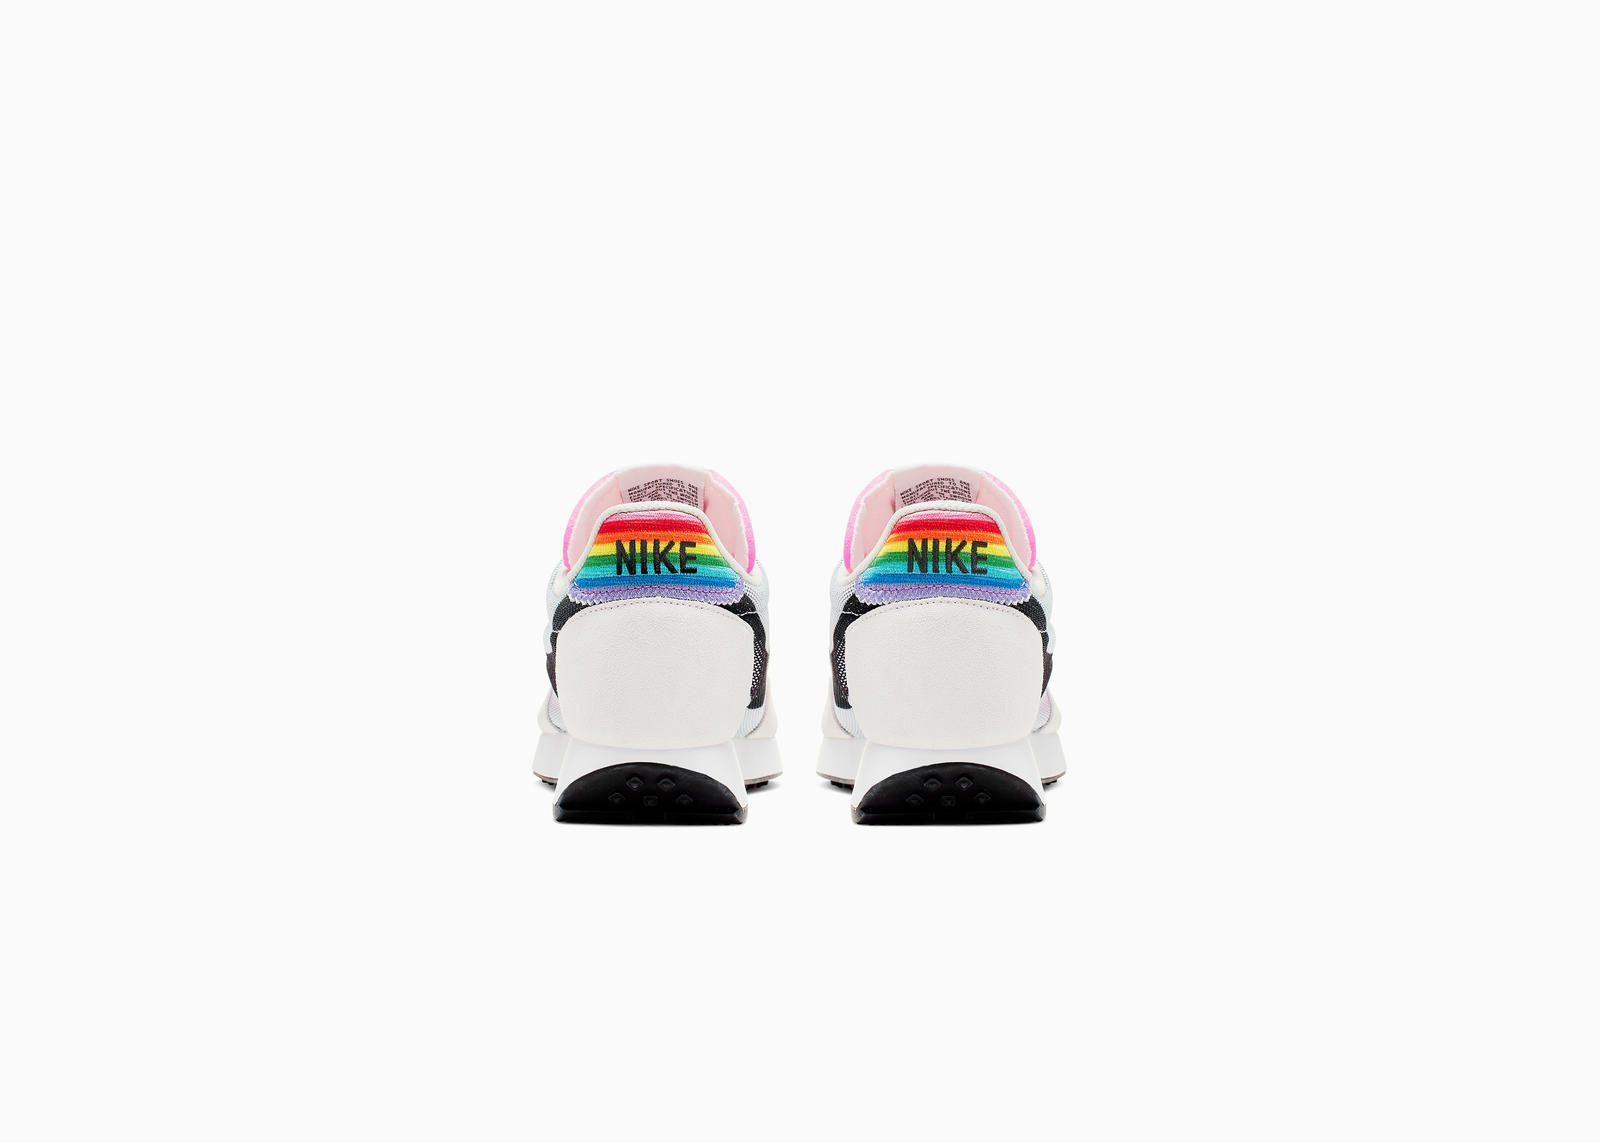 Nike-BETRUE-2019-Collection-3_88103